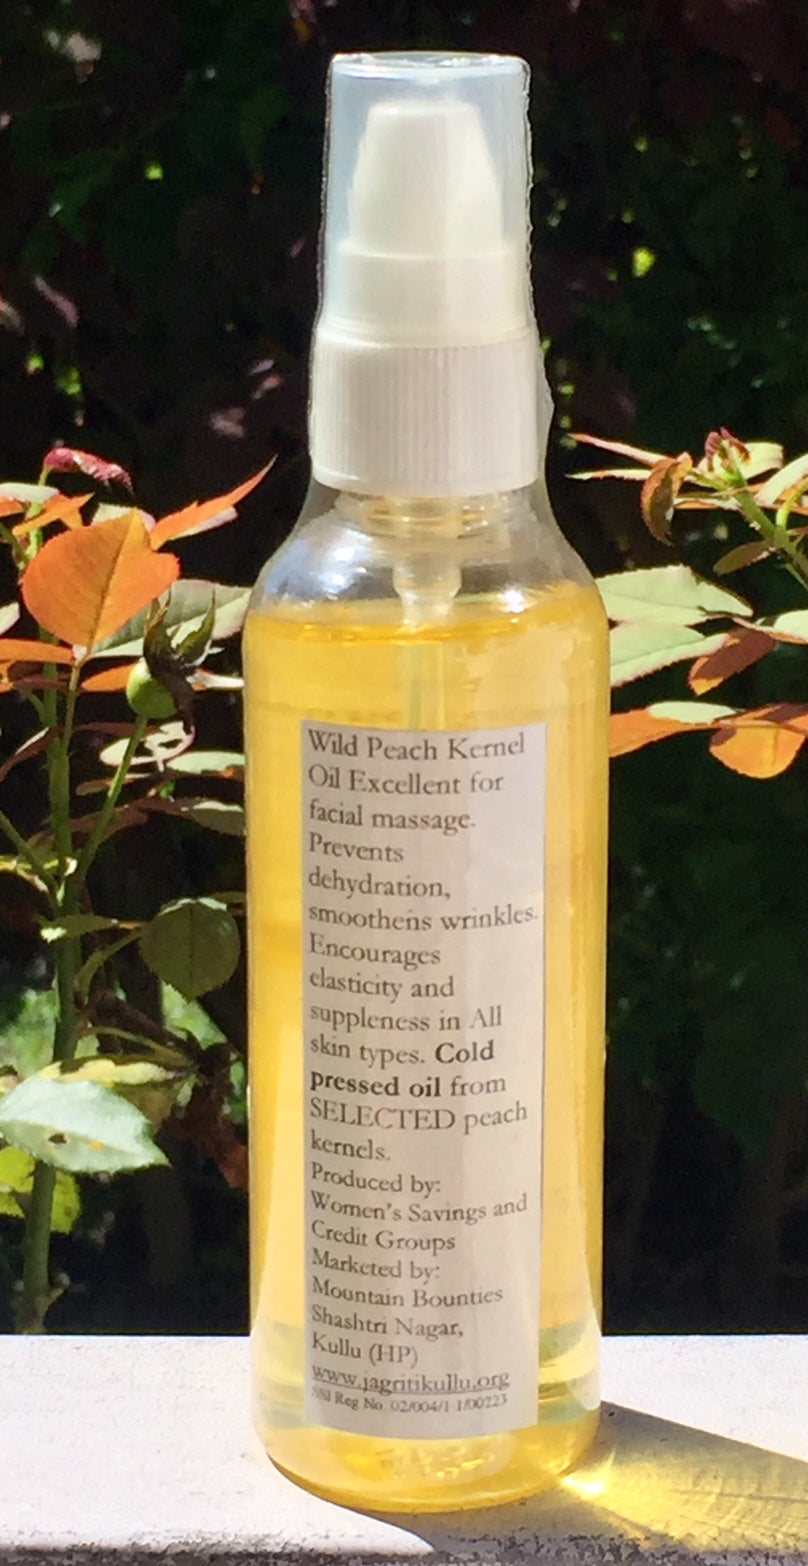 Peach kernel Extract oil. Natural, handmade